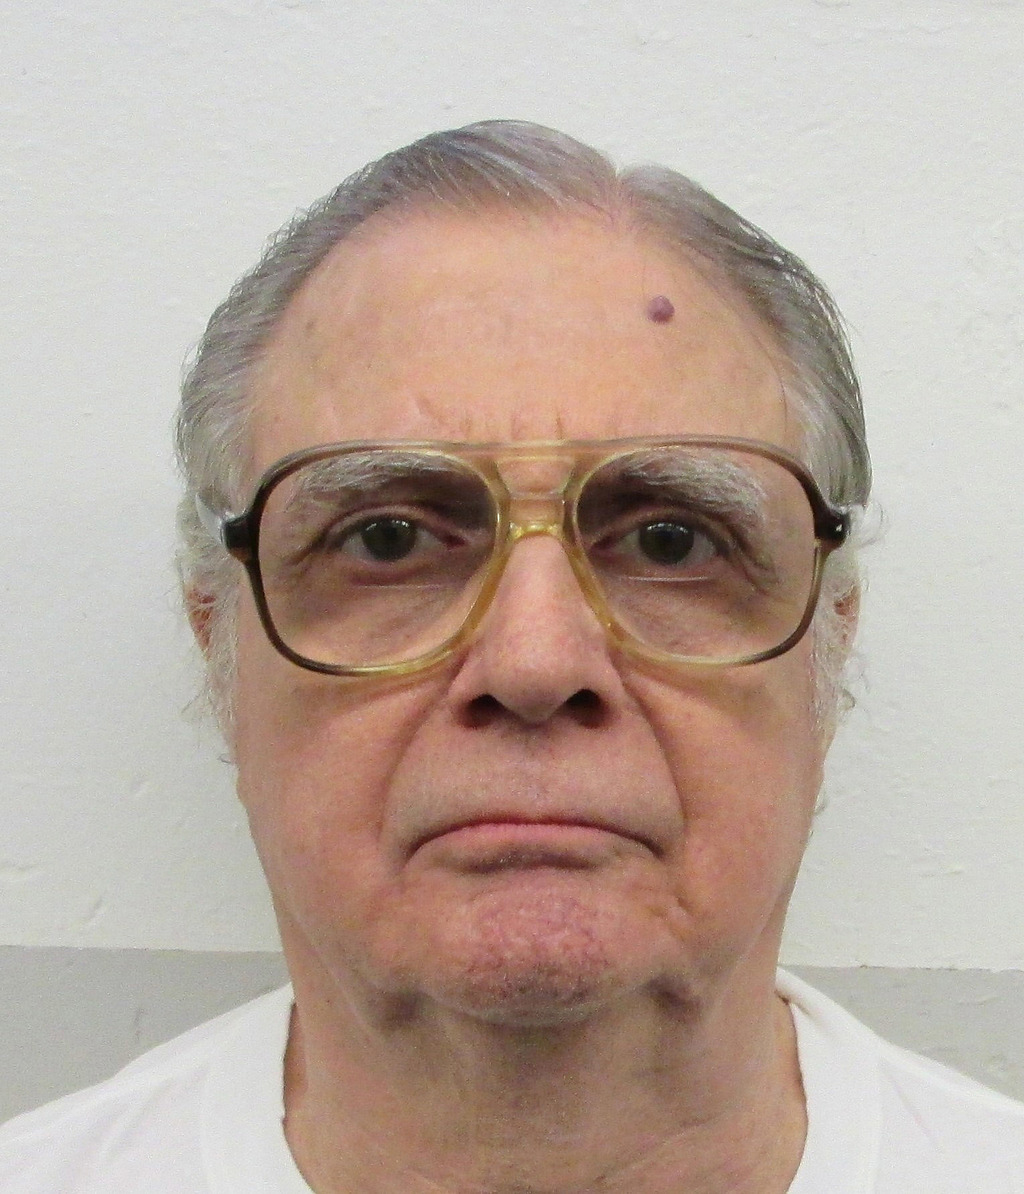 Alabama Department of Corrections shows death row inmate Tommy Arthur who was convicted in the 1982